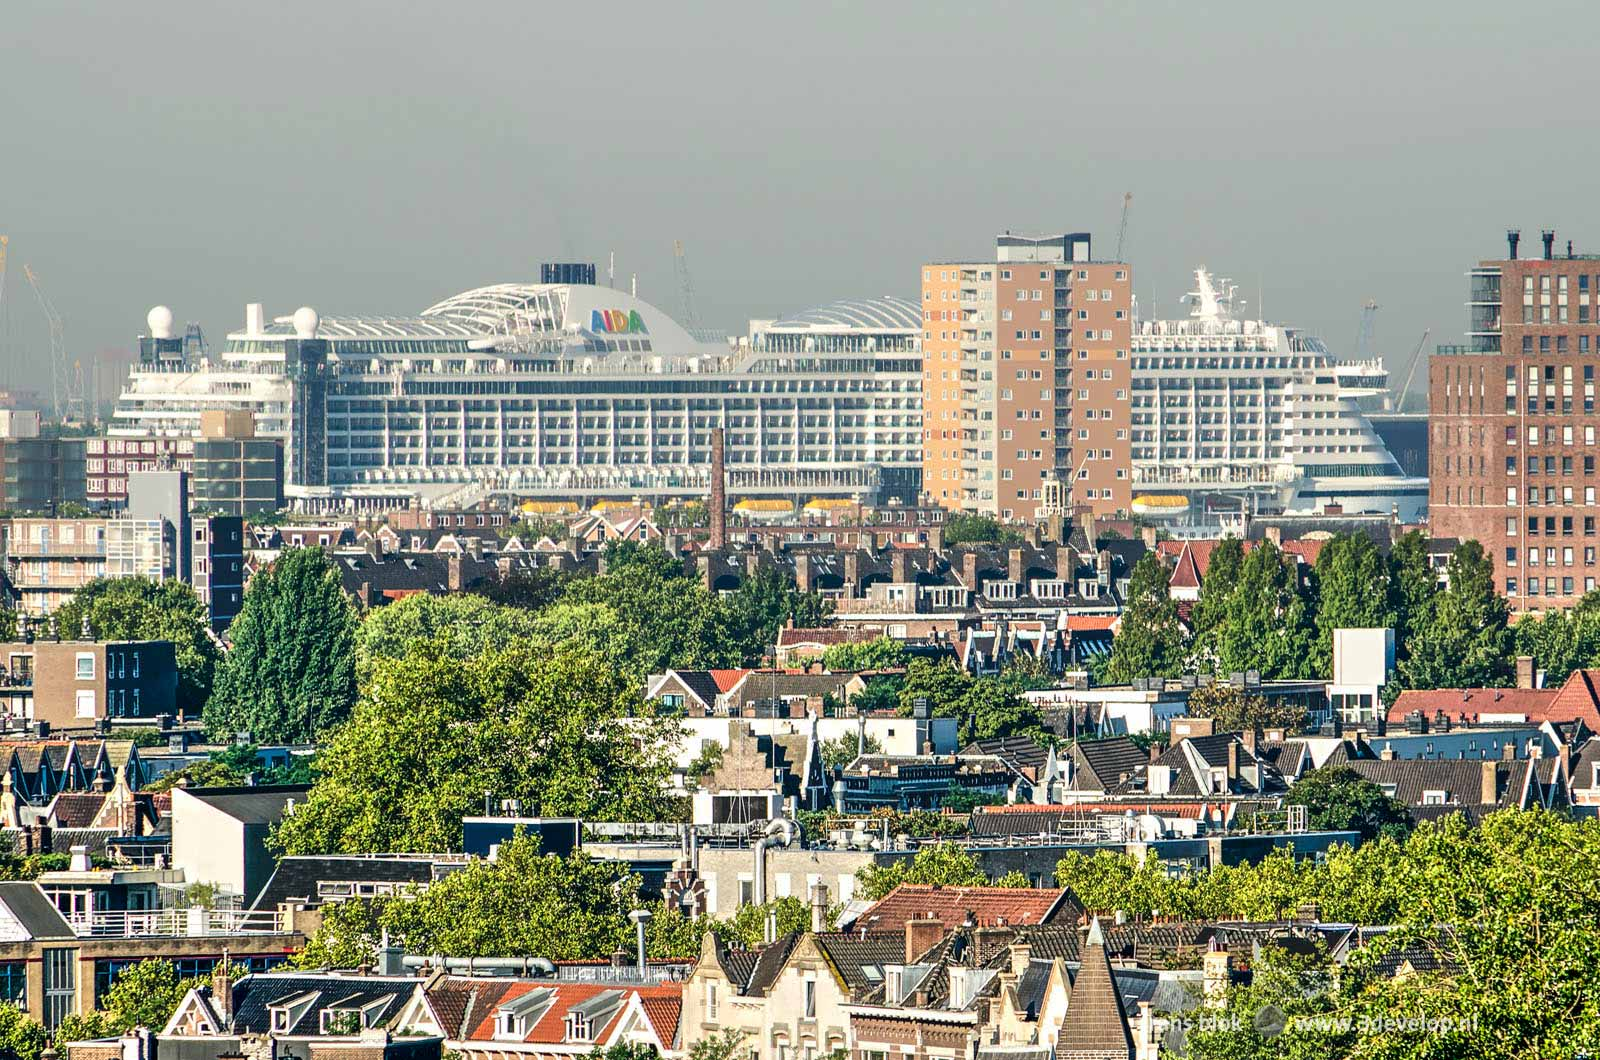 Giant cruiseship Aida on the Nieuwe Maas river in Rotterdam, with old and new neighbourhoods in the foreground